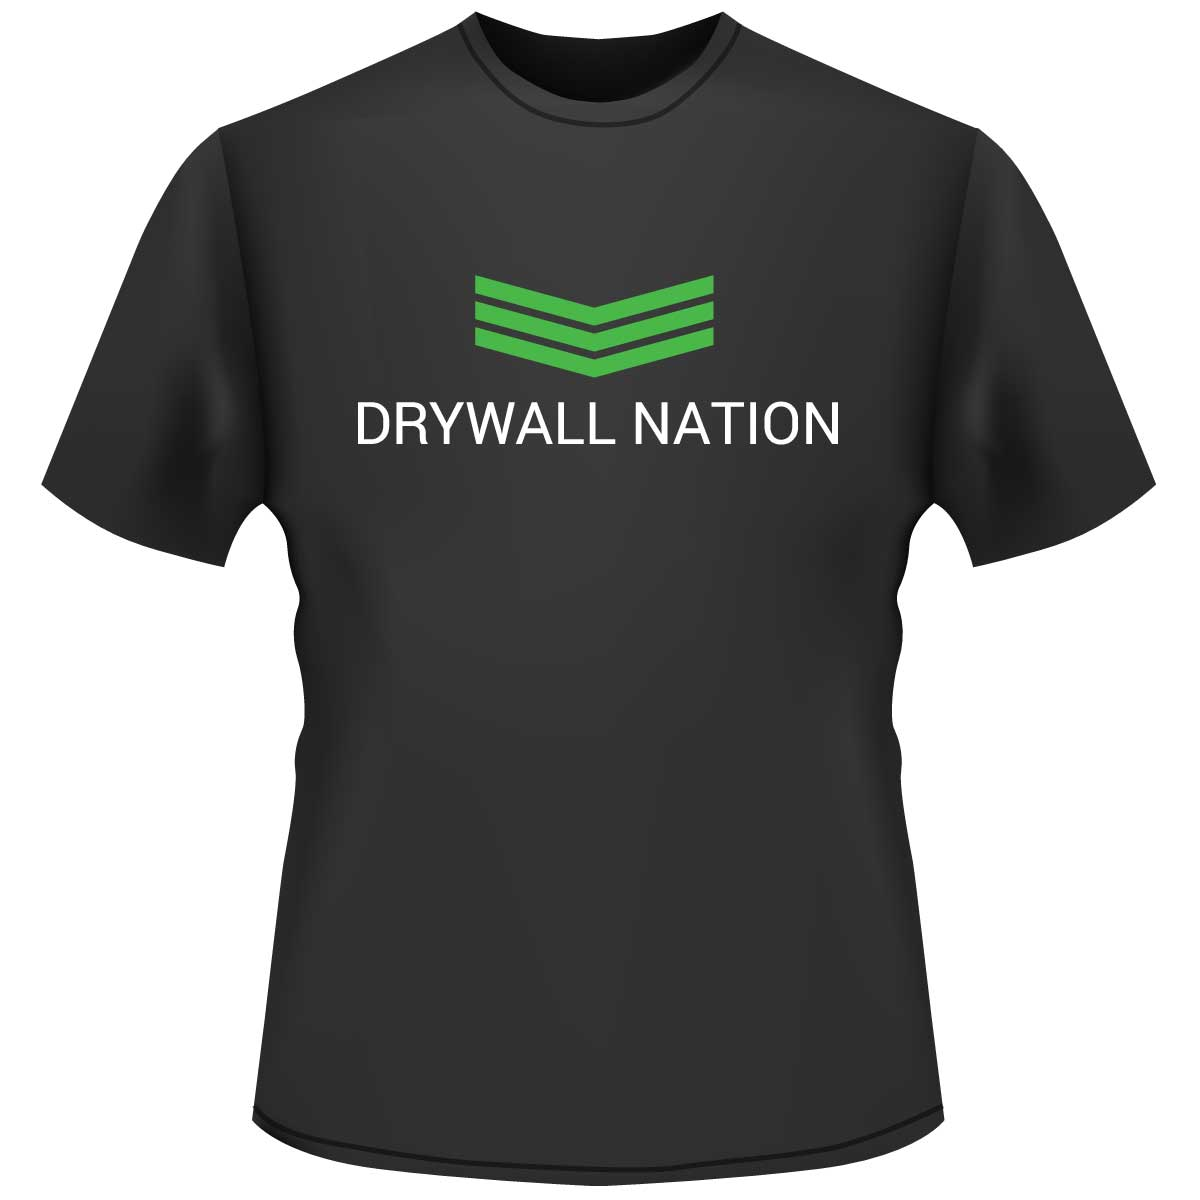 Drywall Nation Shirt - Black